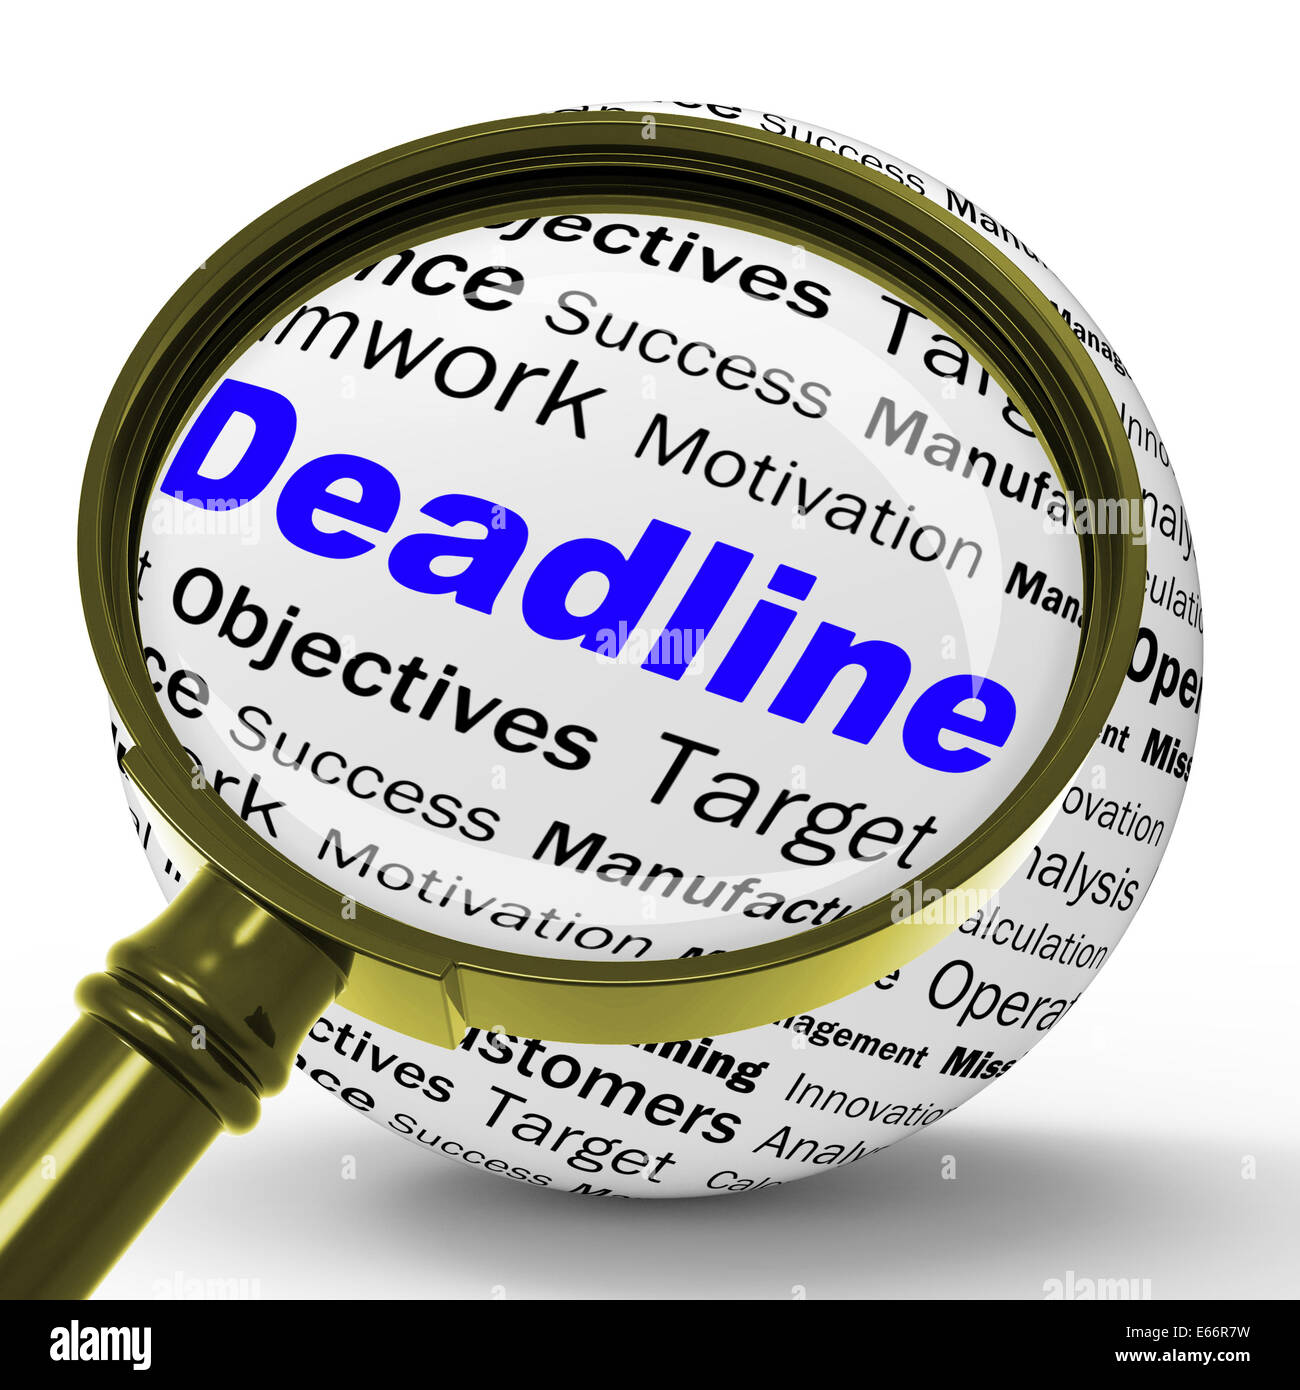 Deadline Definition Meaning Job Time High Resolution Stock Photography And Images Alamy